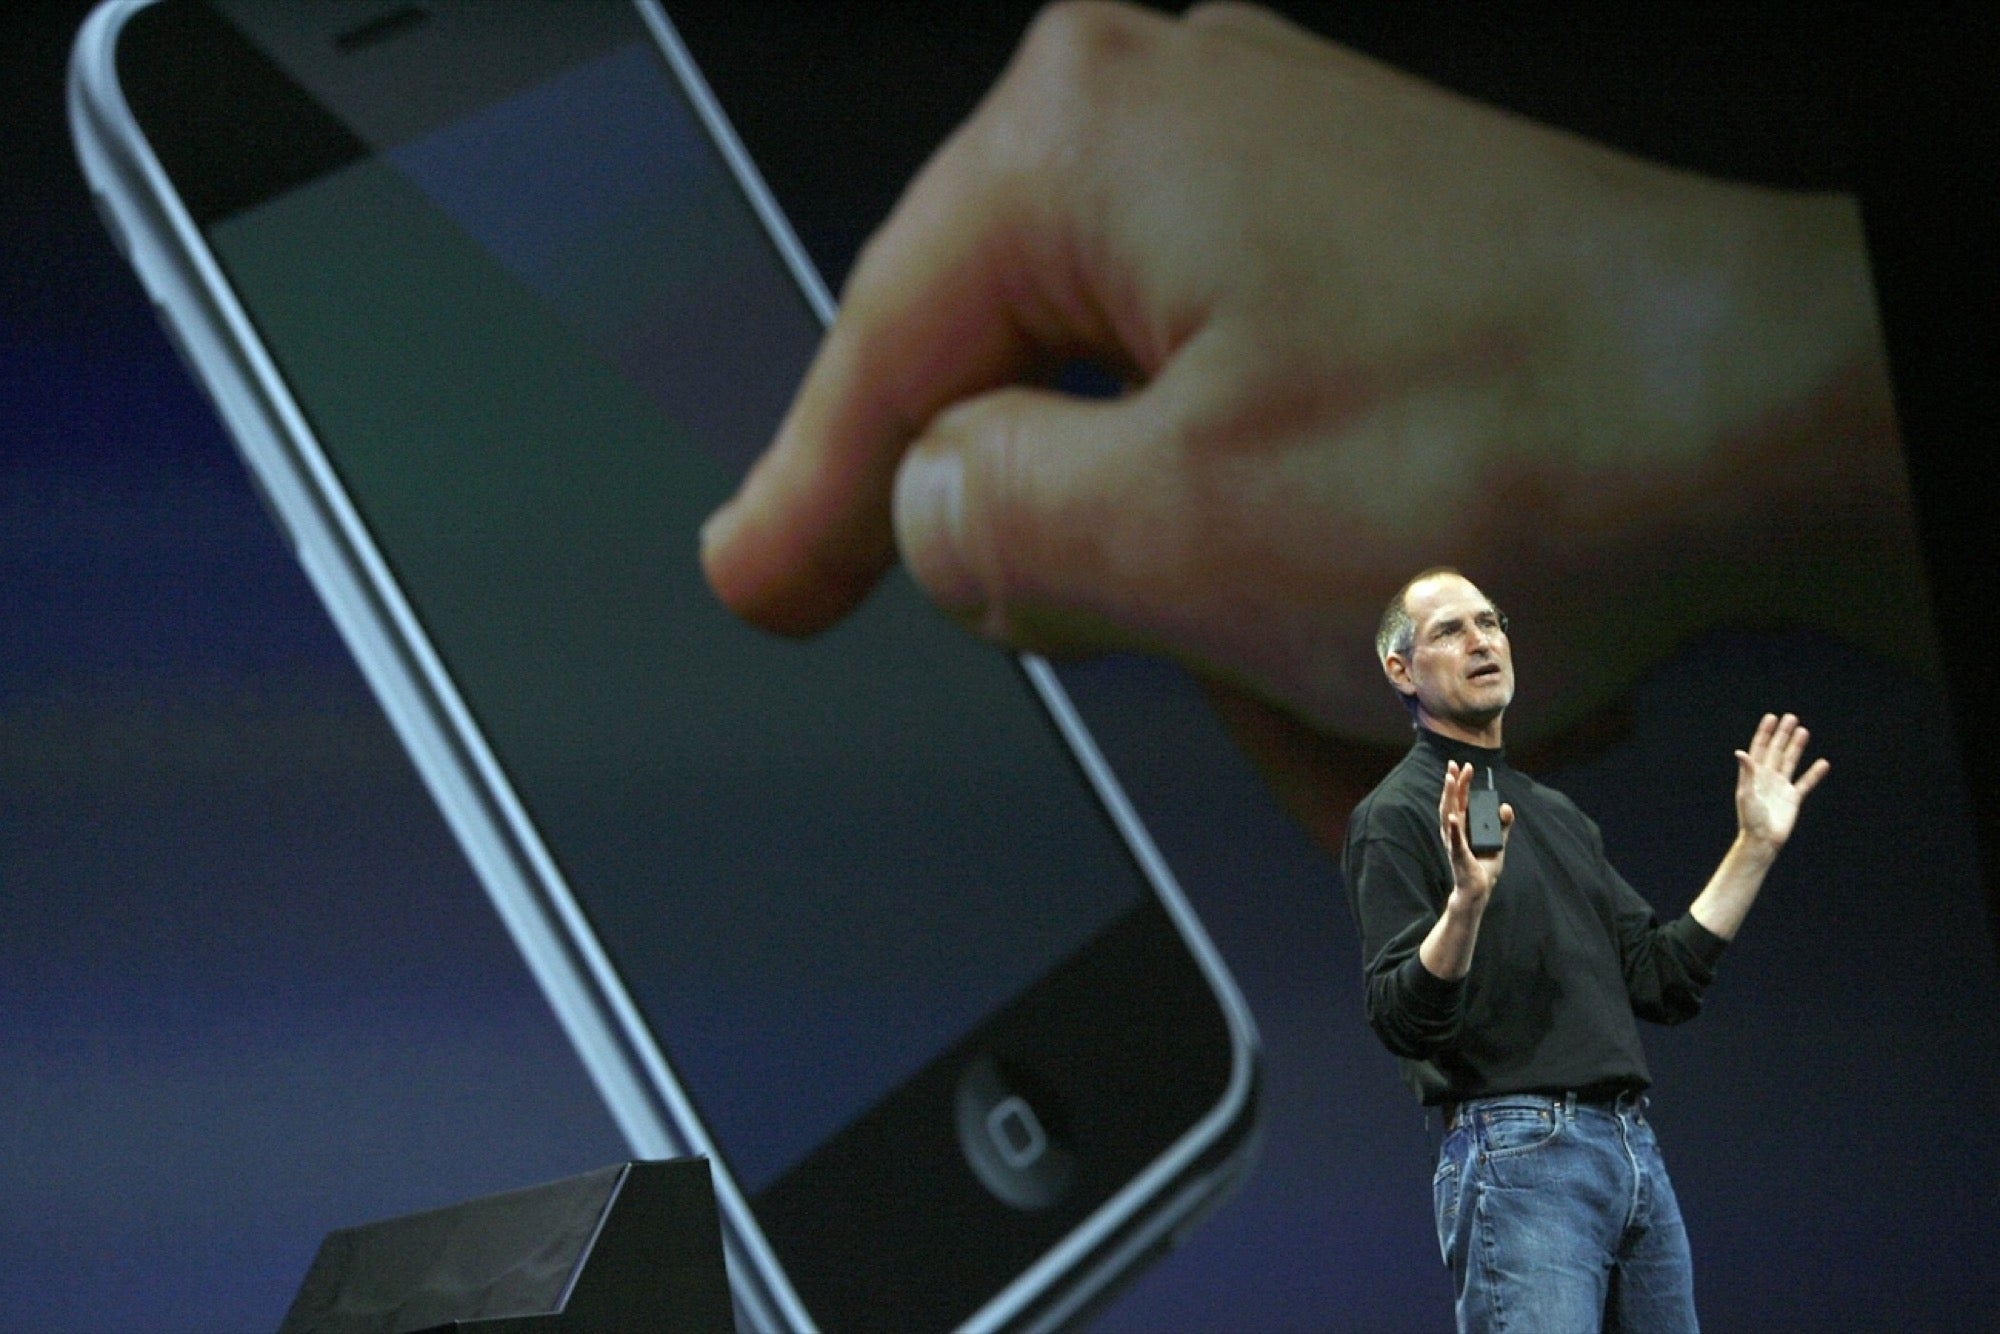 How Steve Jobs Mislead a Room Full of Tech Media and Changed the World